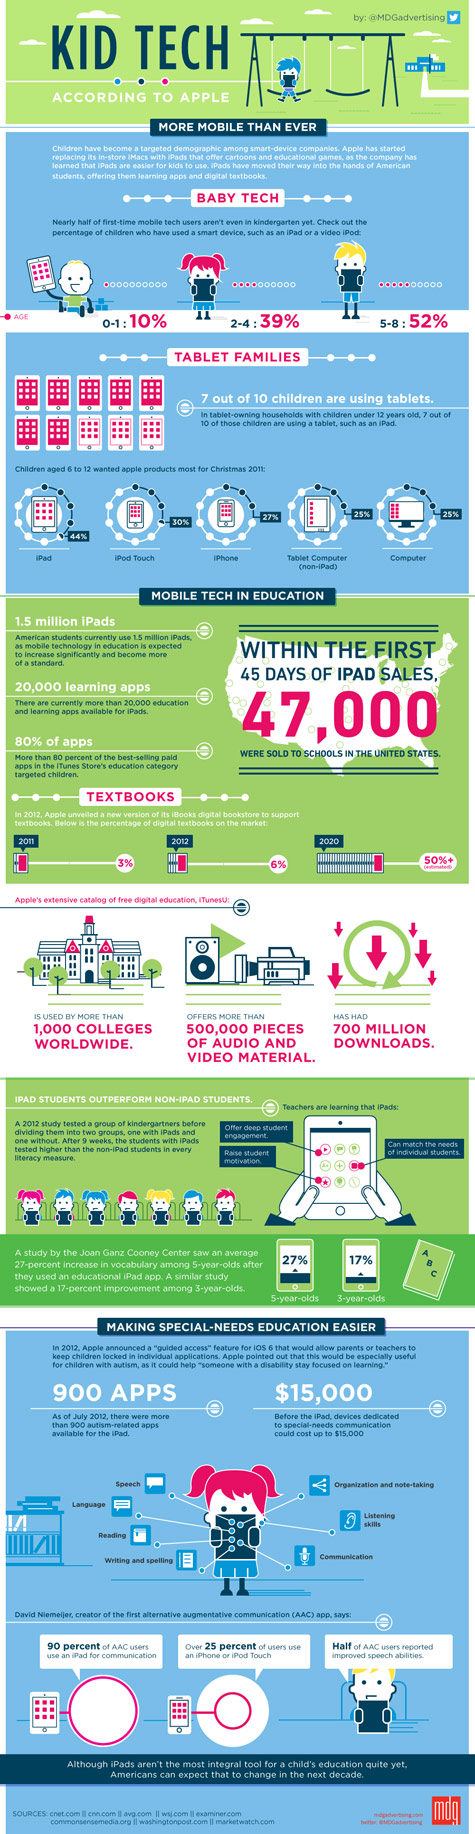 Technology Infographic Kid Tech MDG Advertising